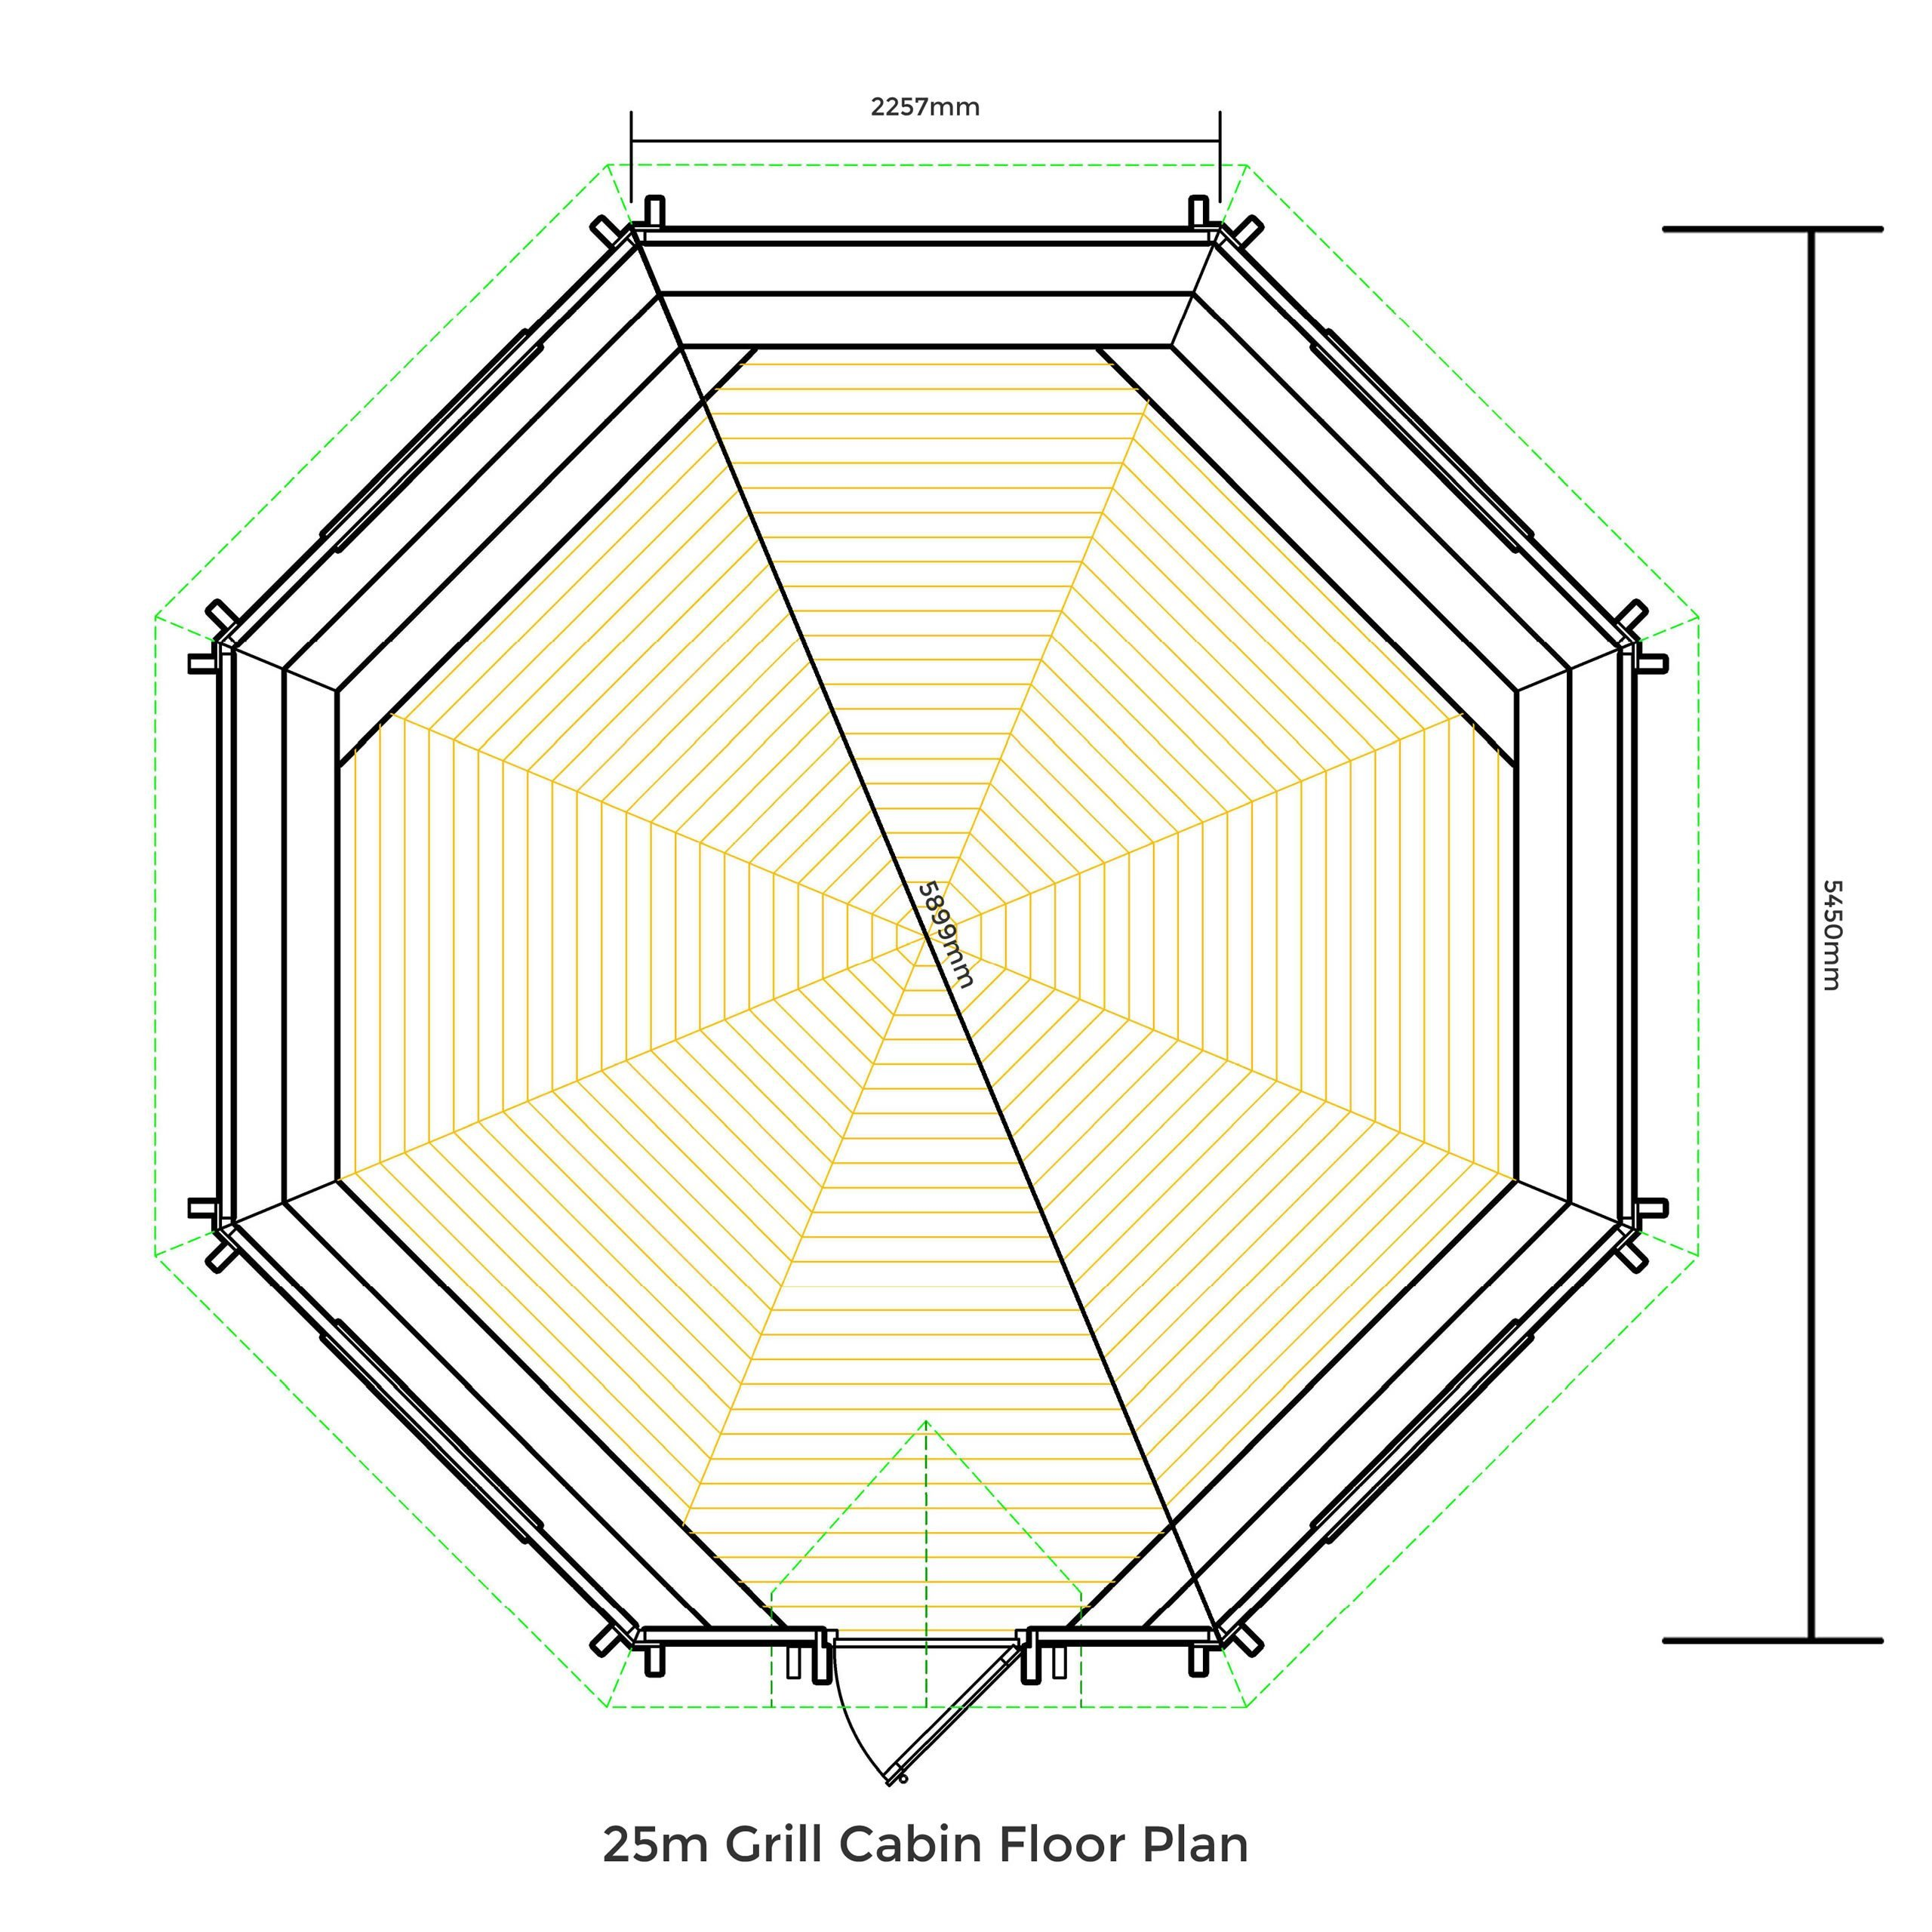 25m grill canbin floor plan